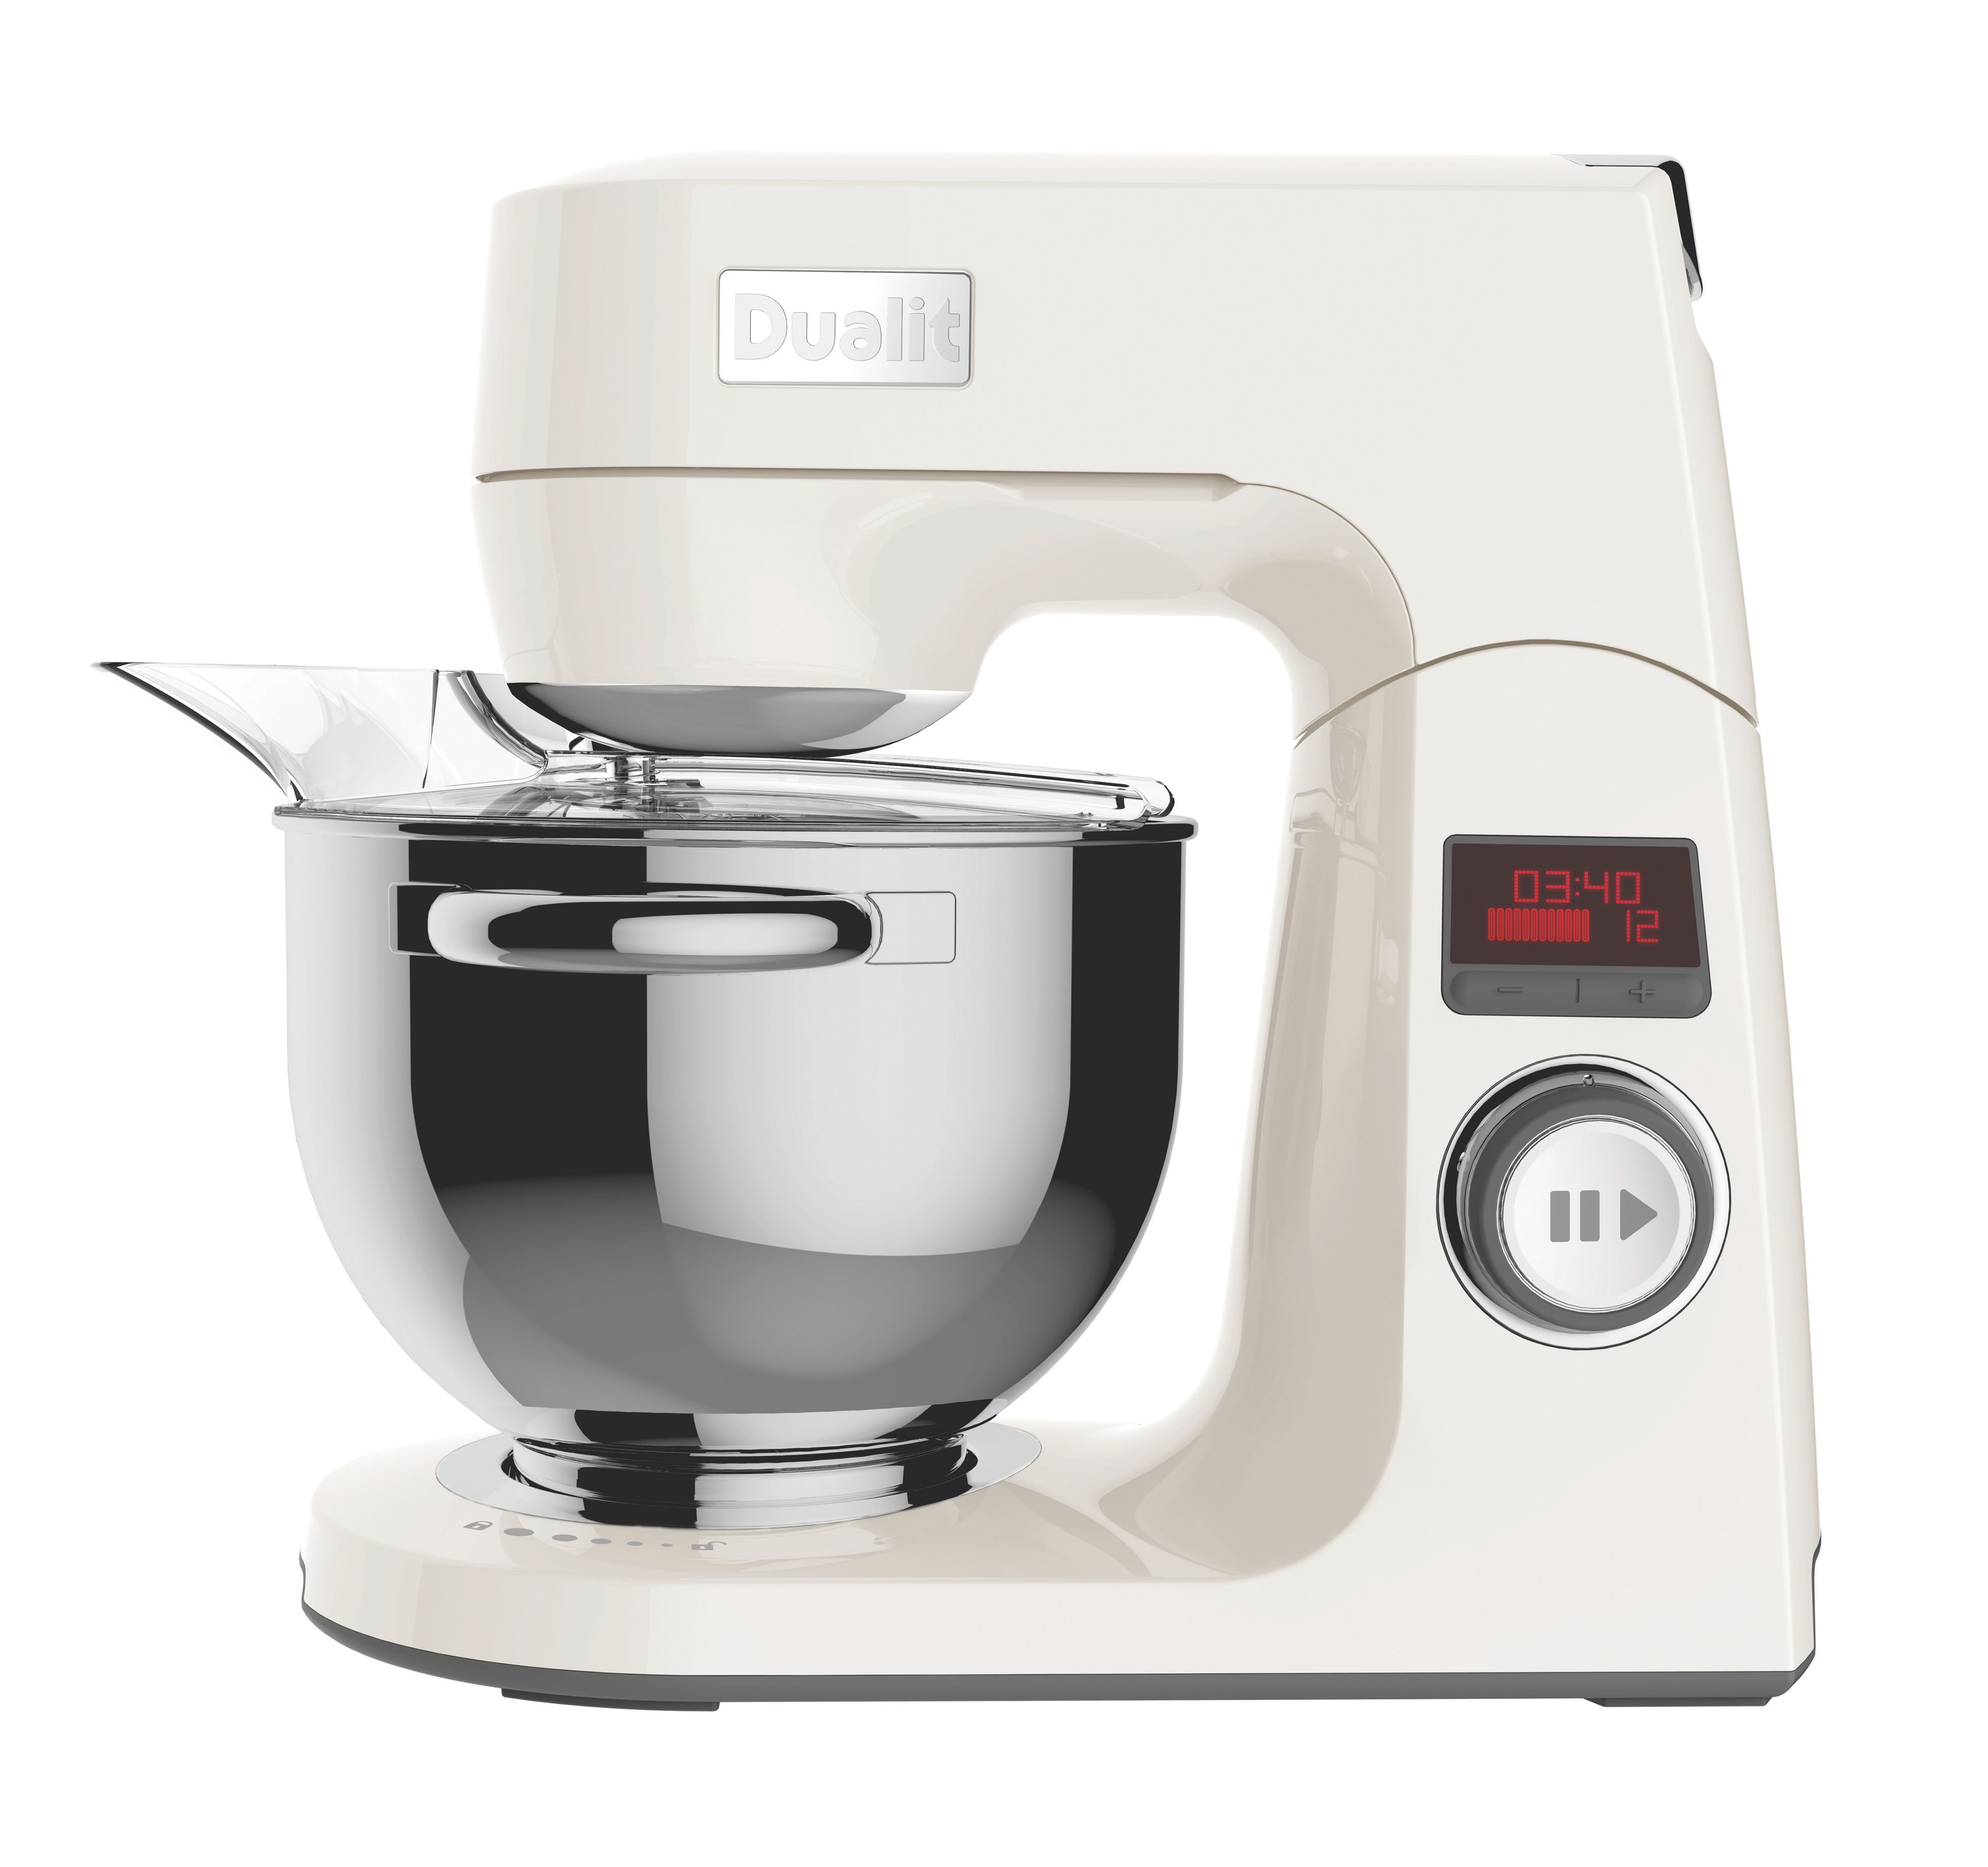 Dualit stand mixer Canvas